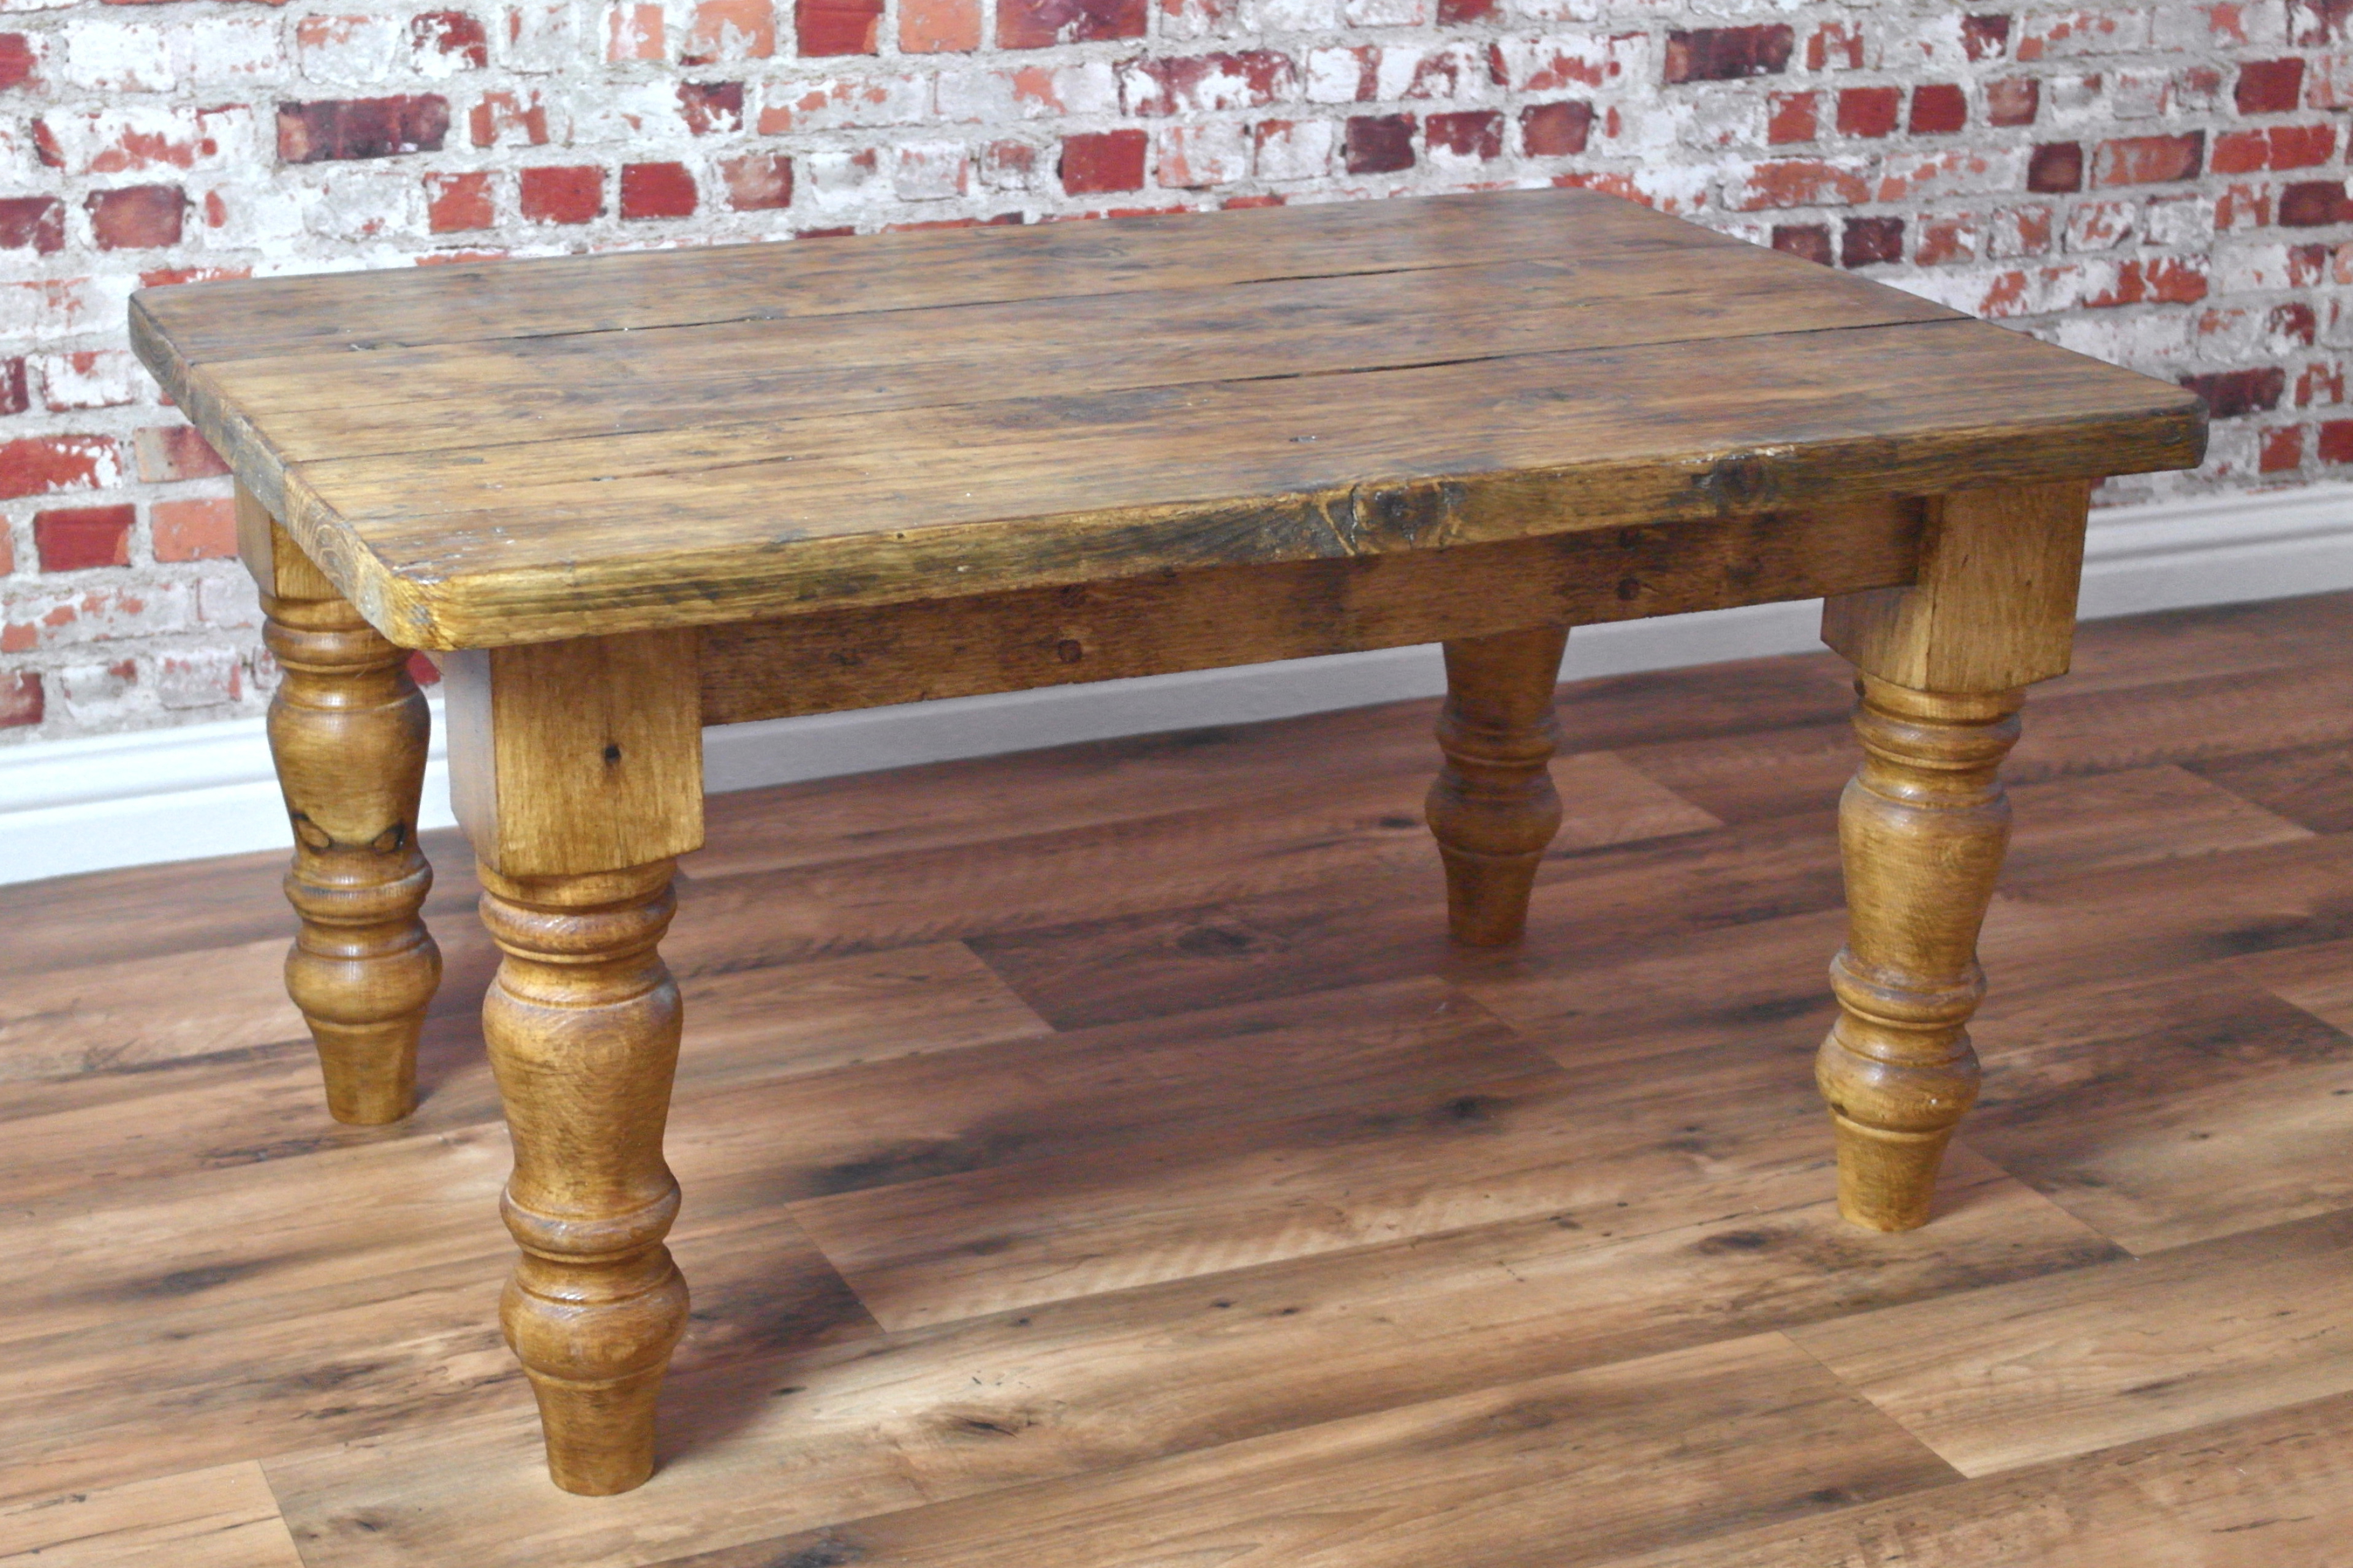 Rustic Farmhouse Pine Coffee Table Made From Reclaimed Wood For 2018 Reclaimed Pine Coffee Tables (Gallery 7 of 20)